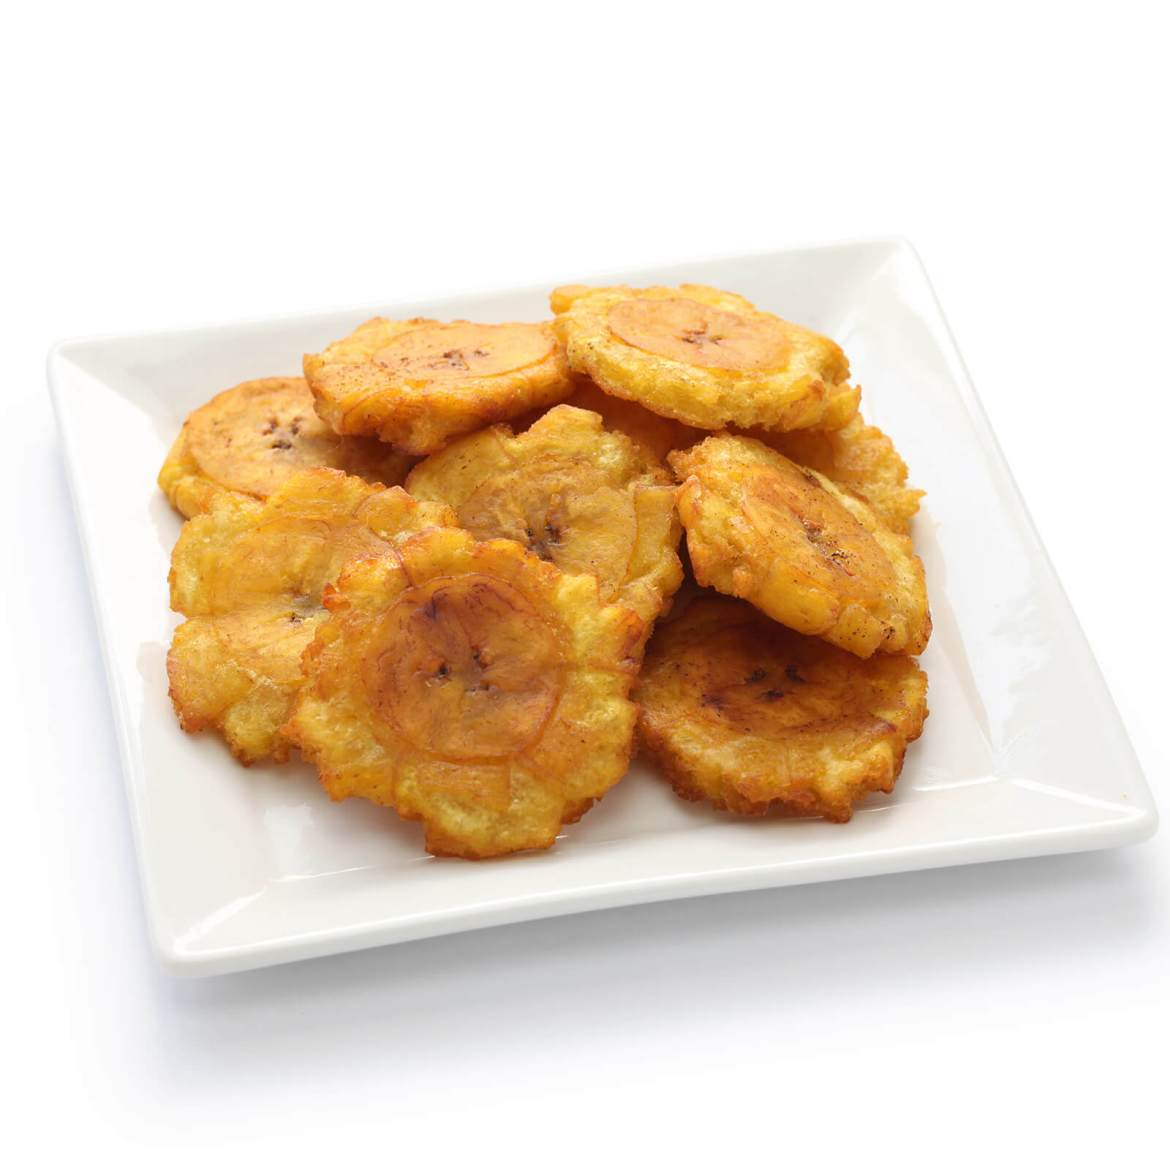 fried plantains (tostones) are one of the 21 Best Vegan Christmas Dinner Recipes